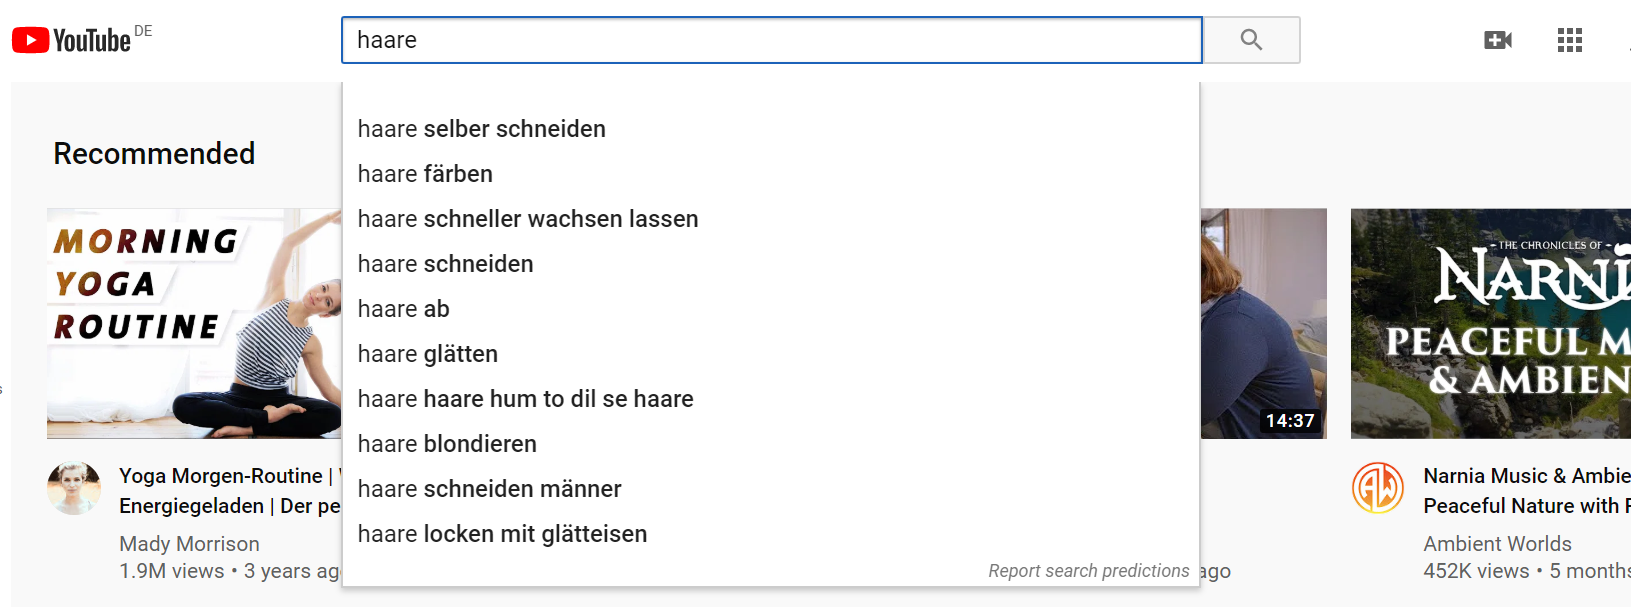 Keyword-Ideen bei YouTube